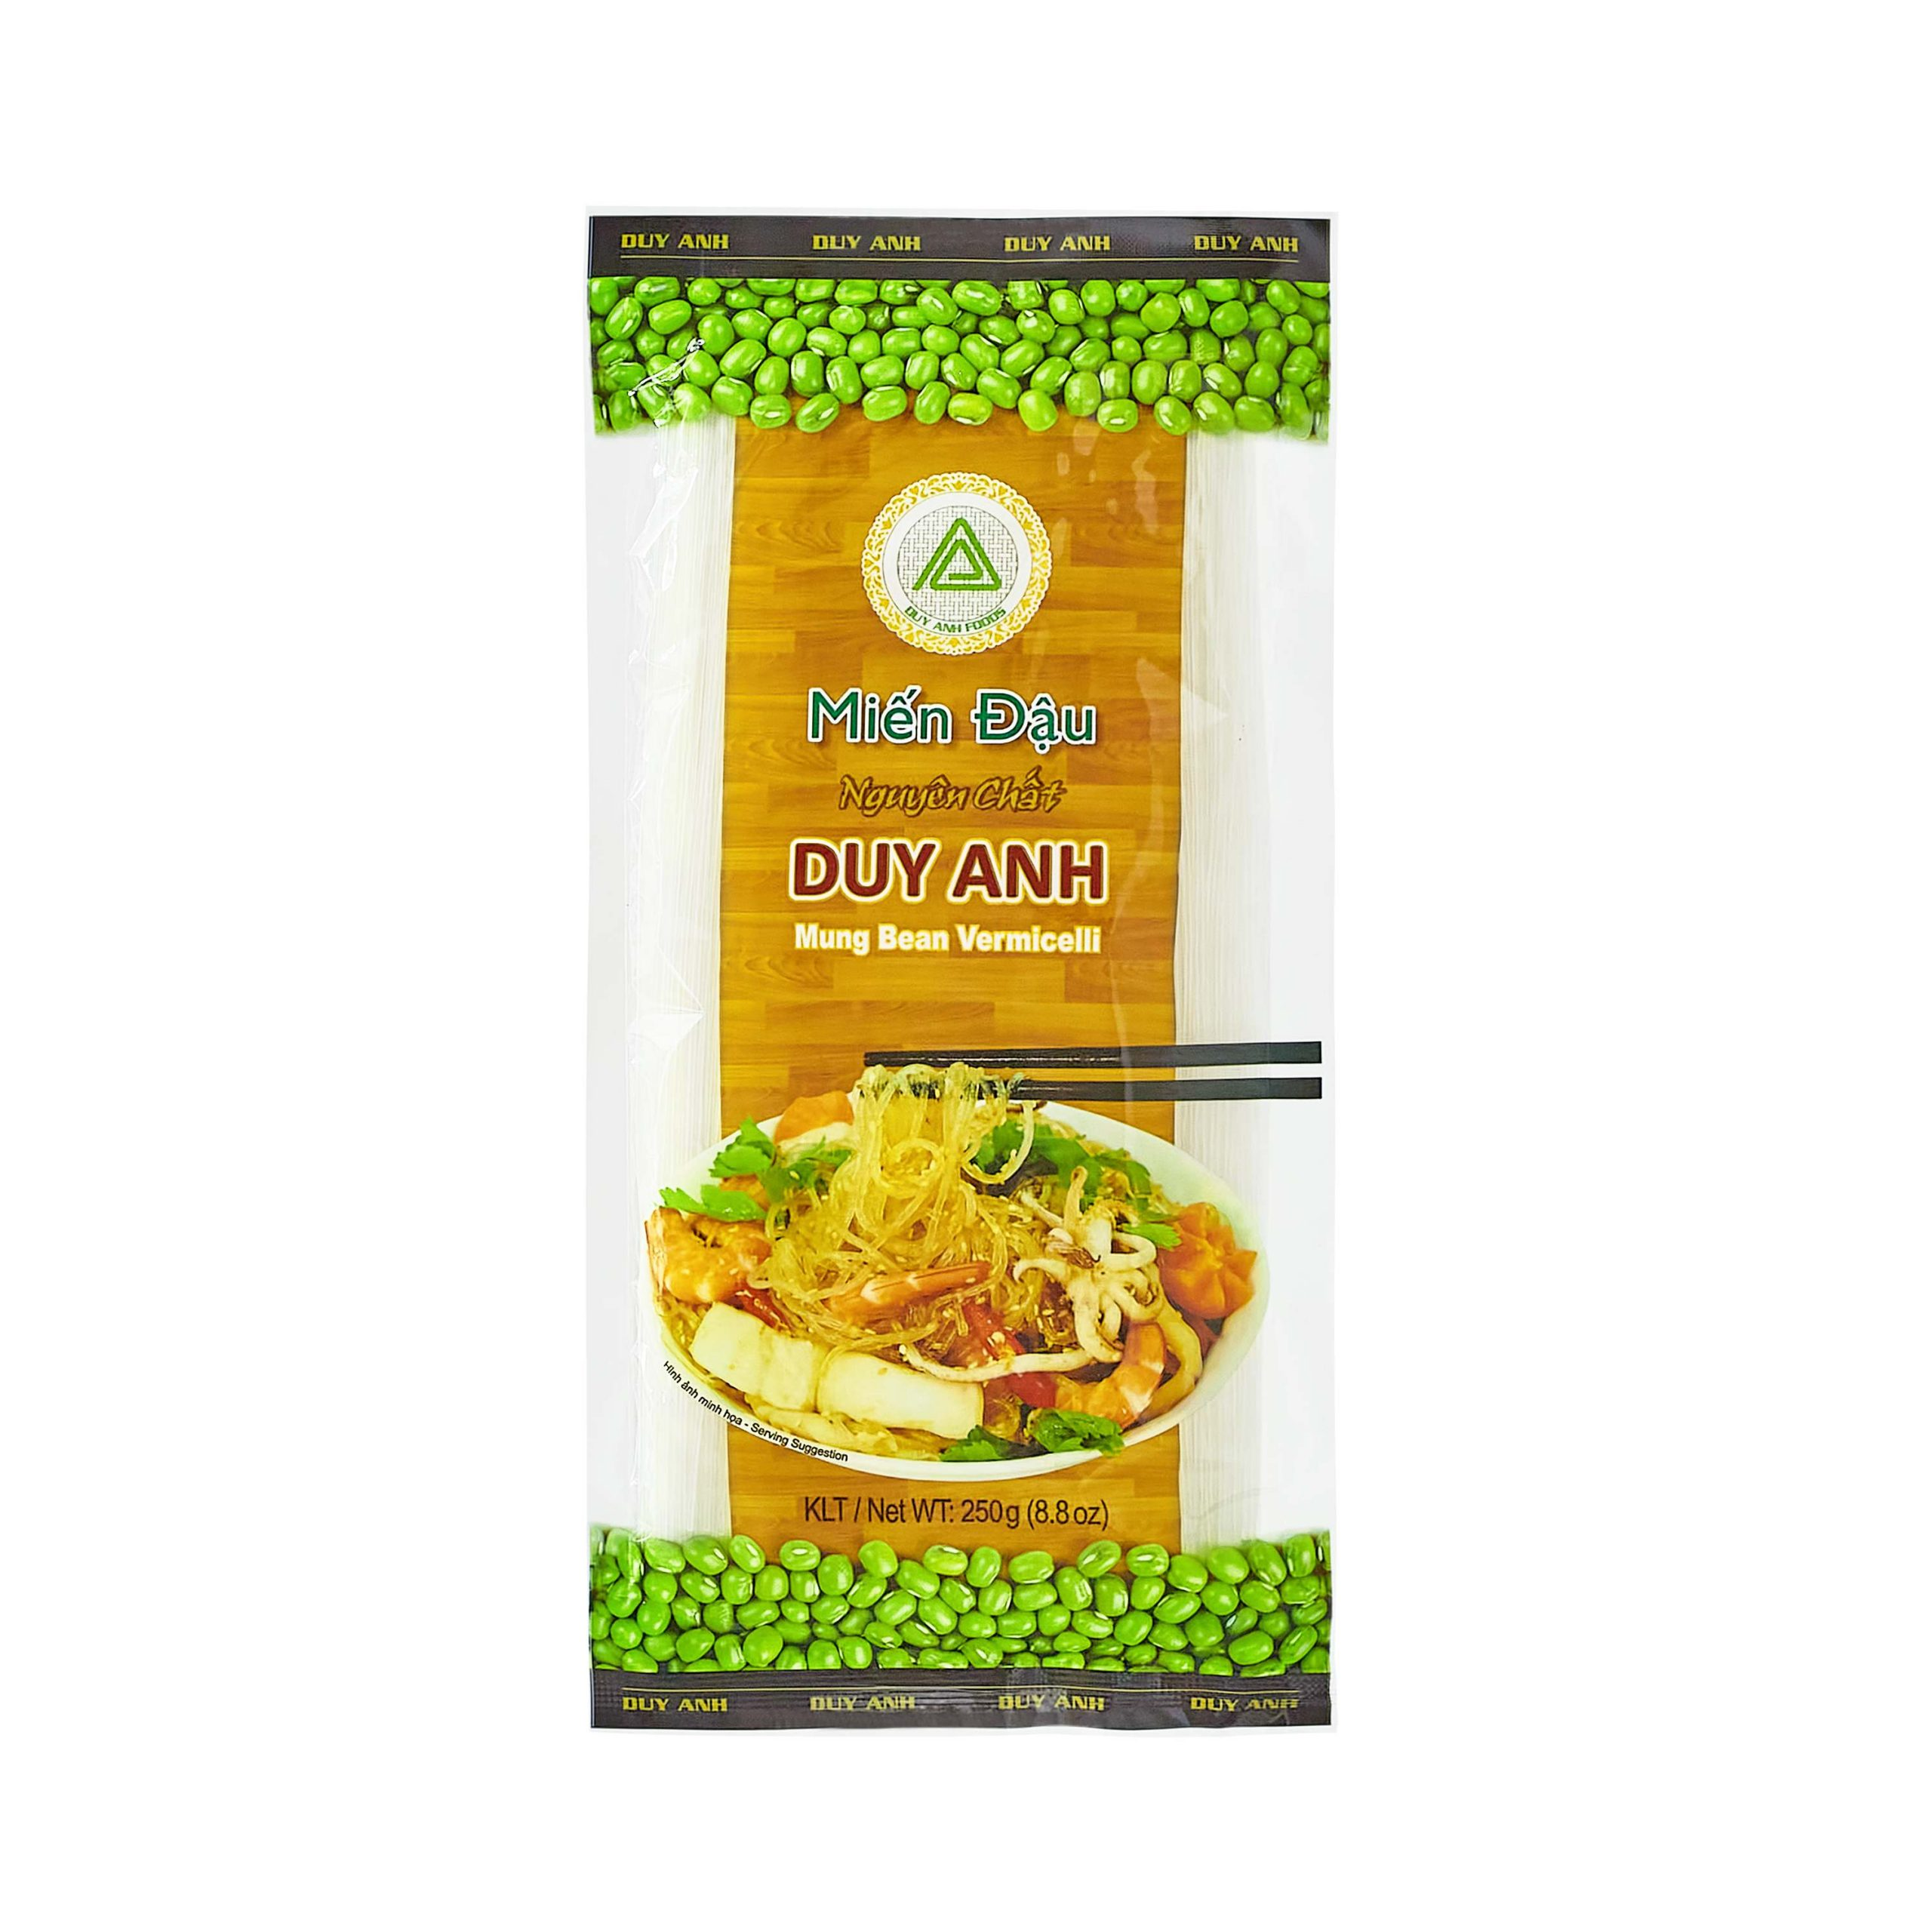 Mung bean vermicelli Duy Anh brand